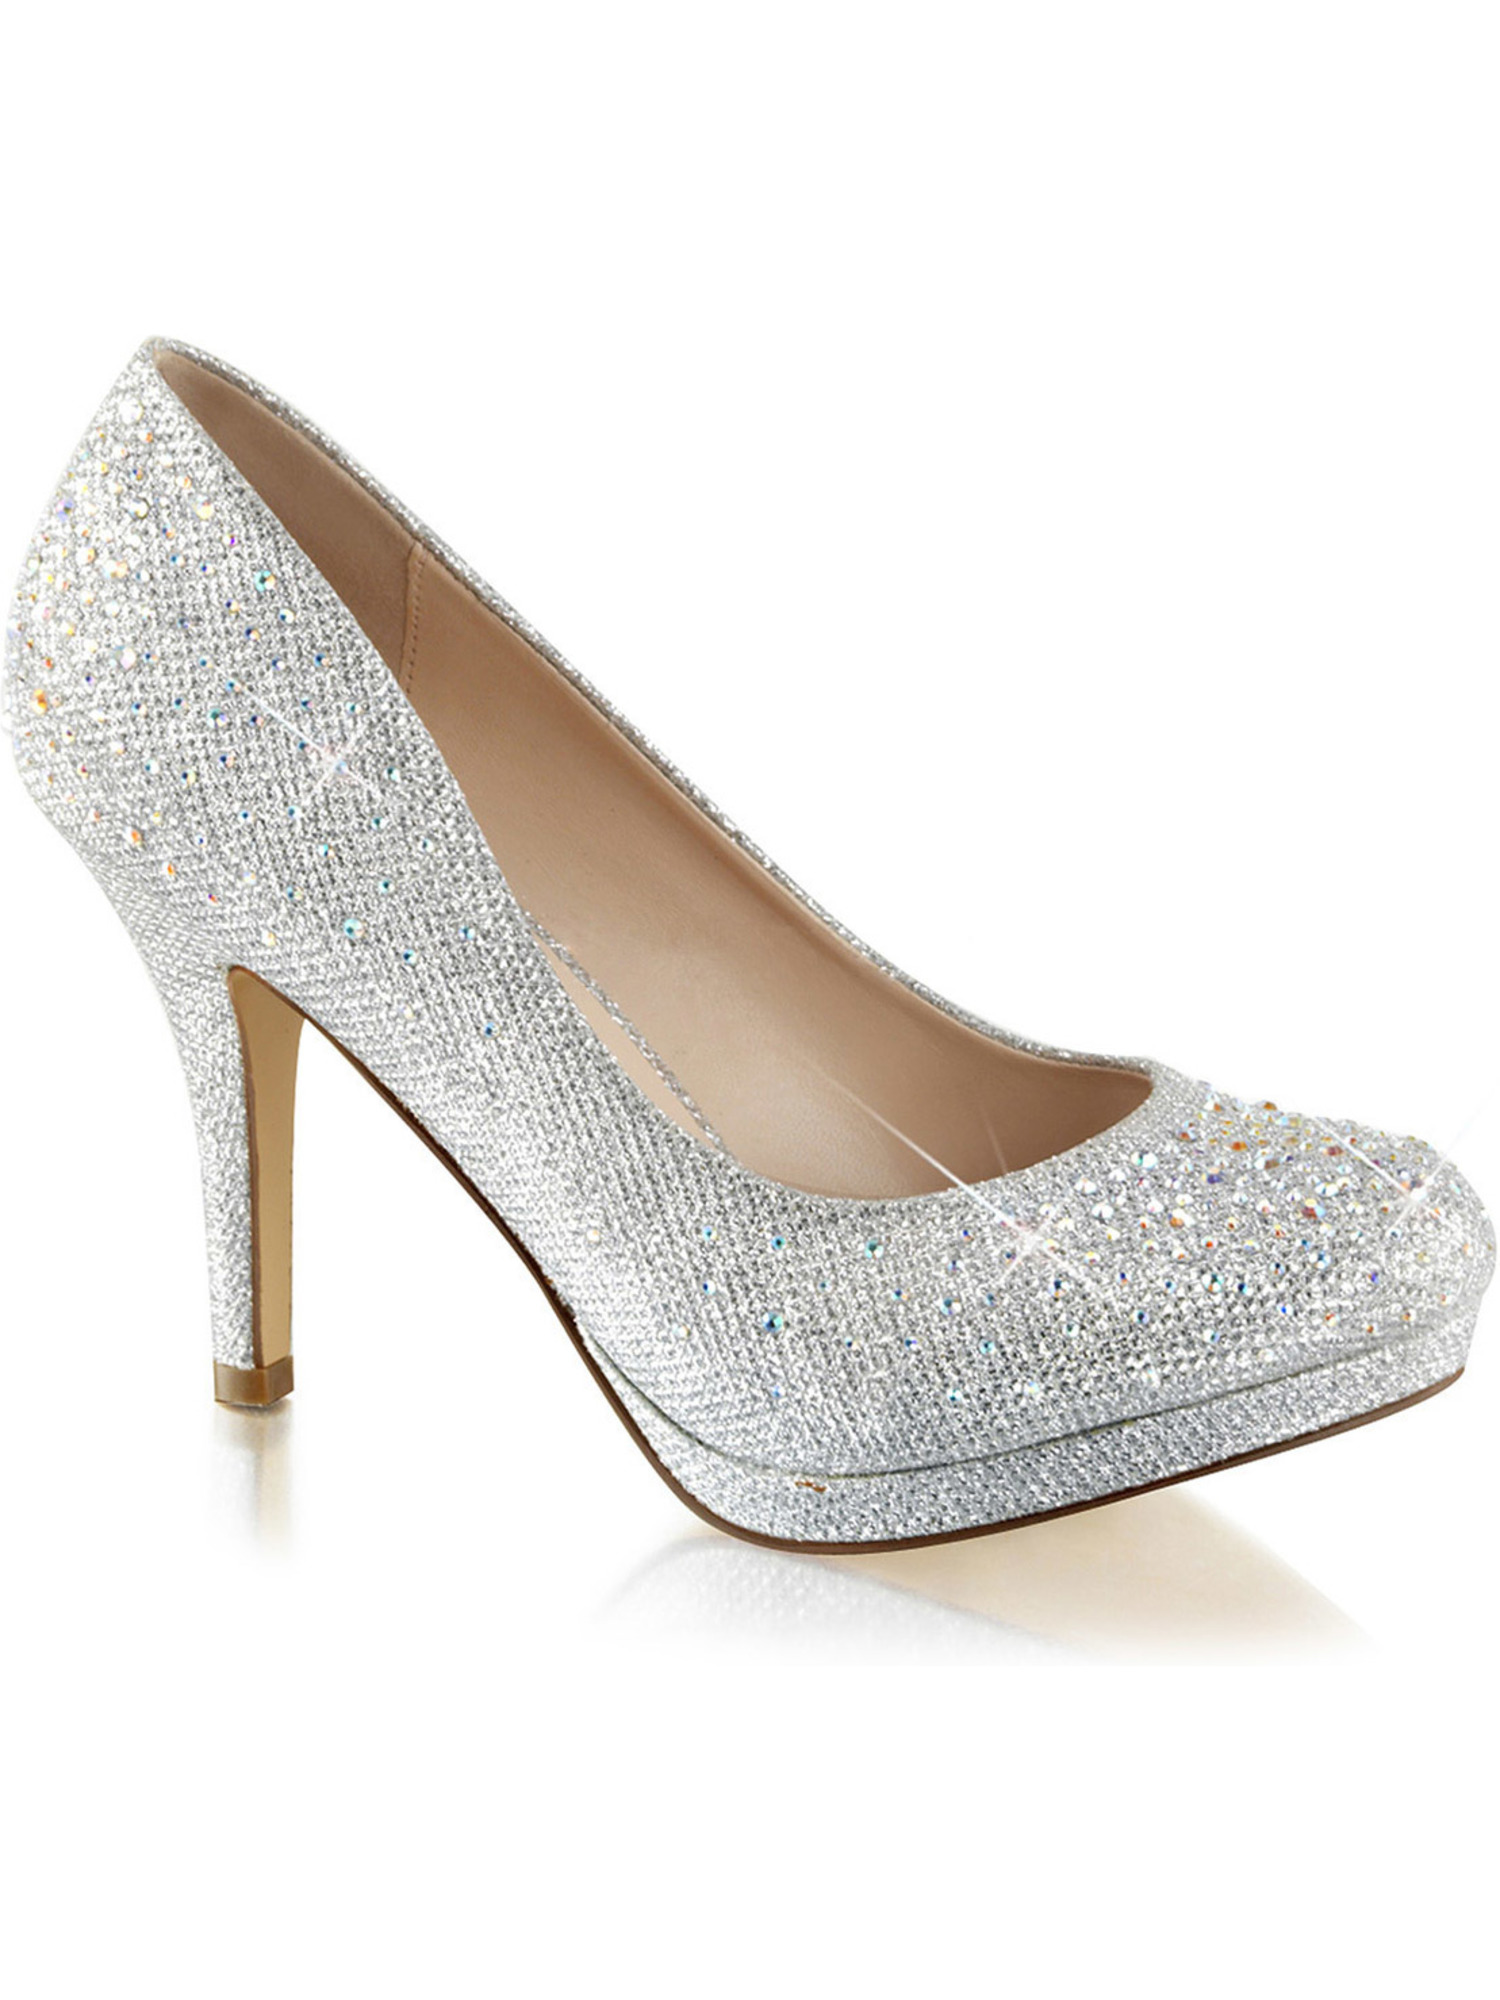 Silver Sparkly High Heels